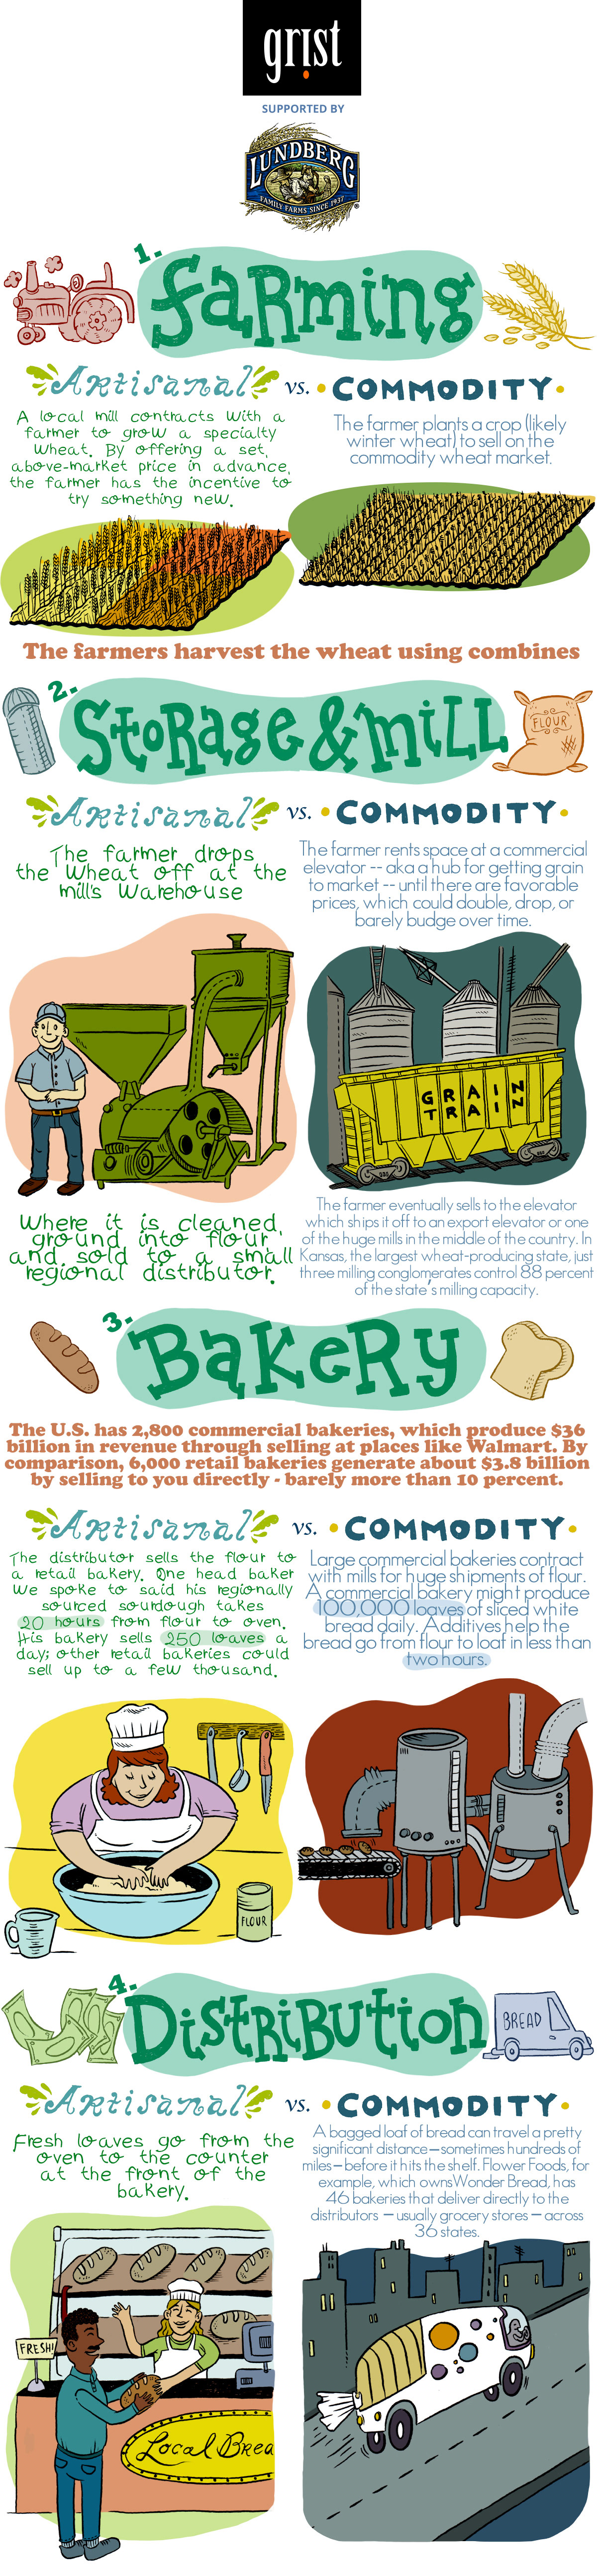 Bread Timeline: This infographic shows why good bread costs more dough